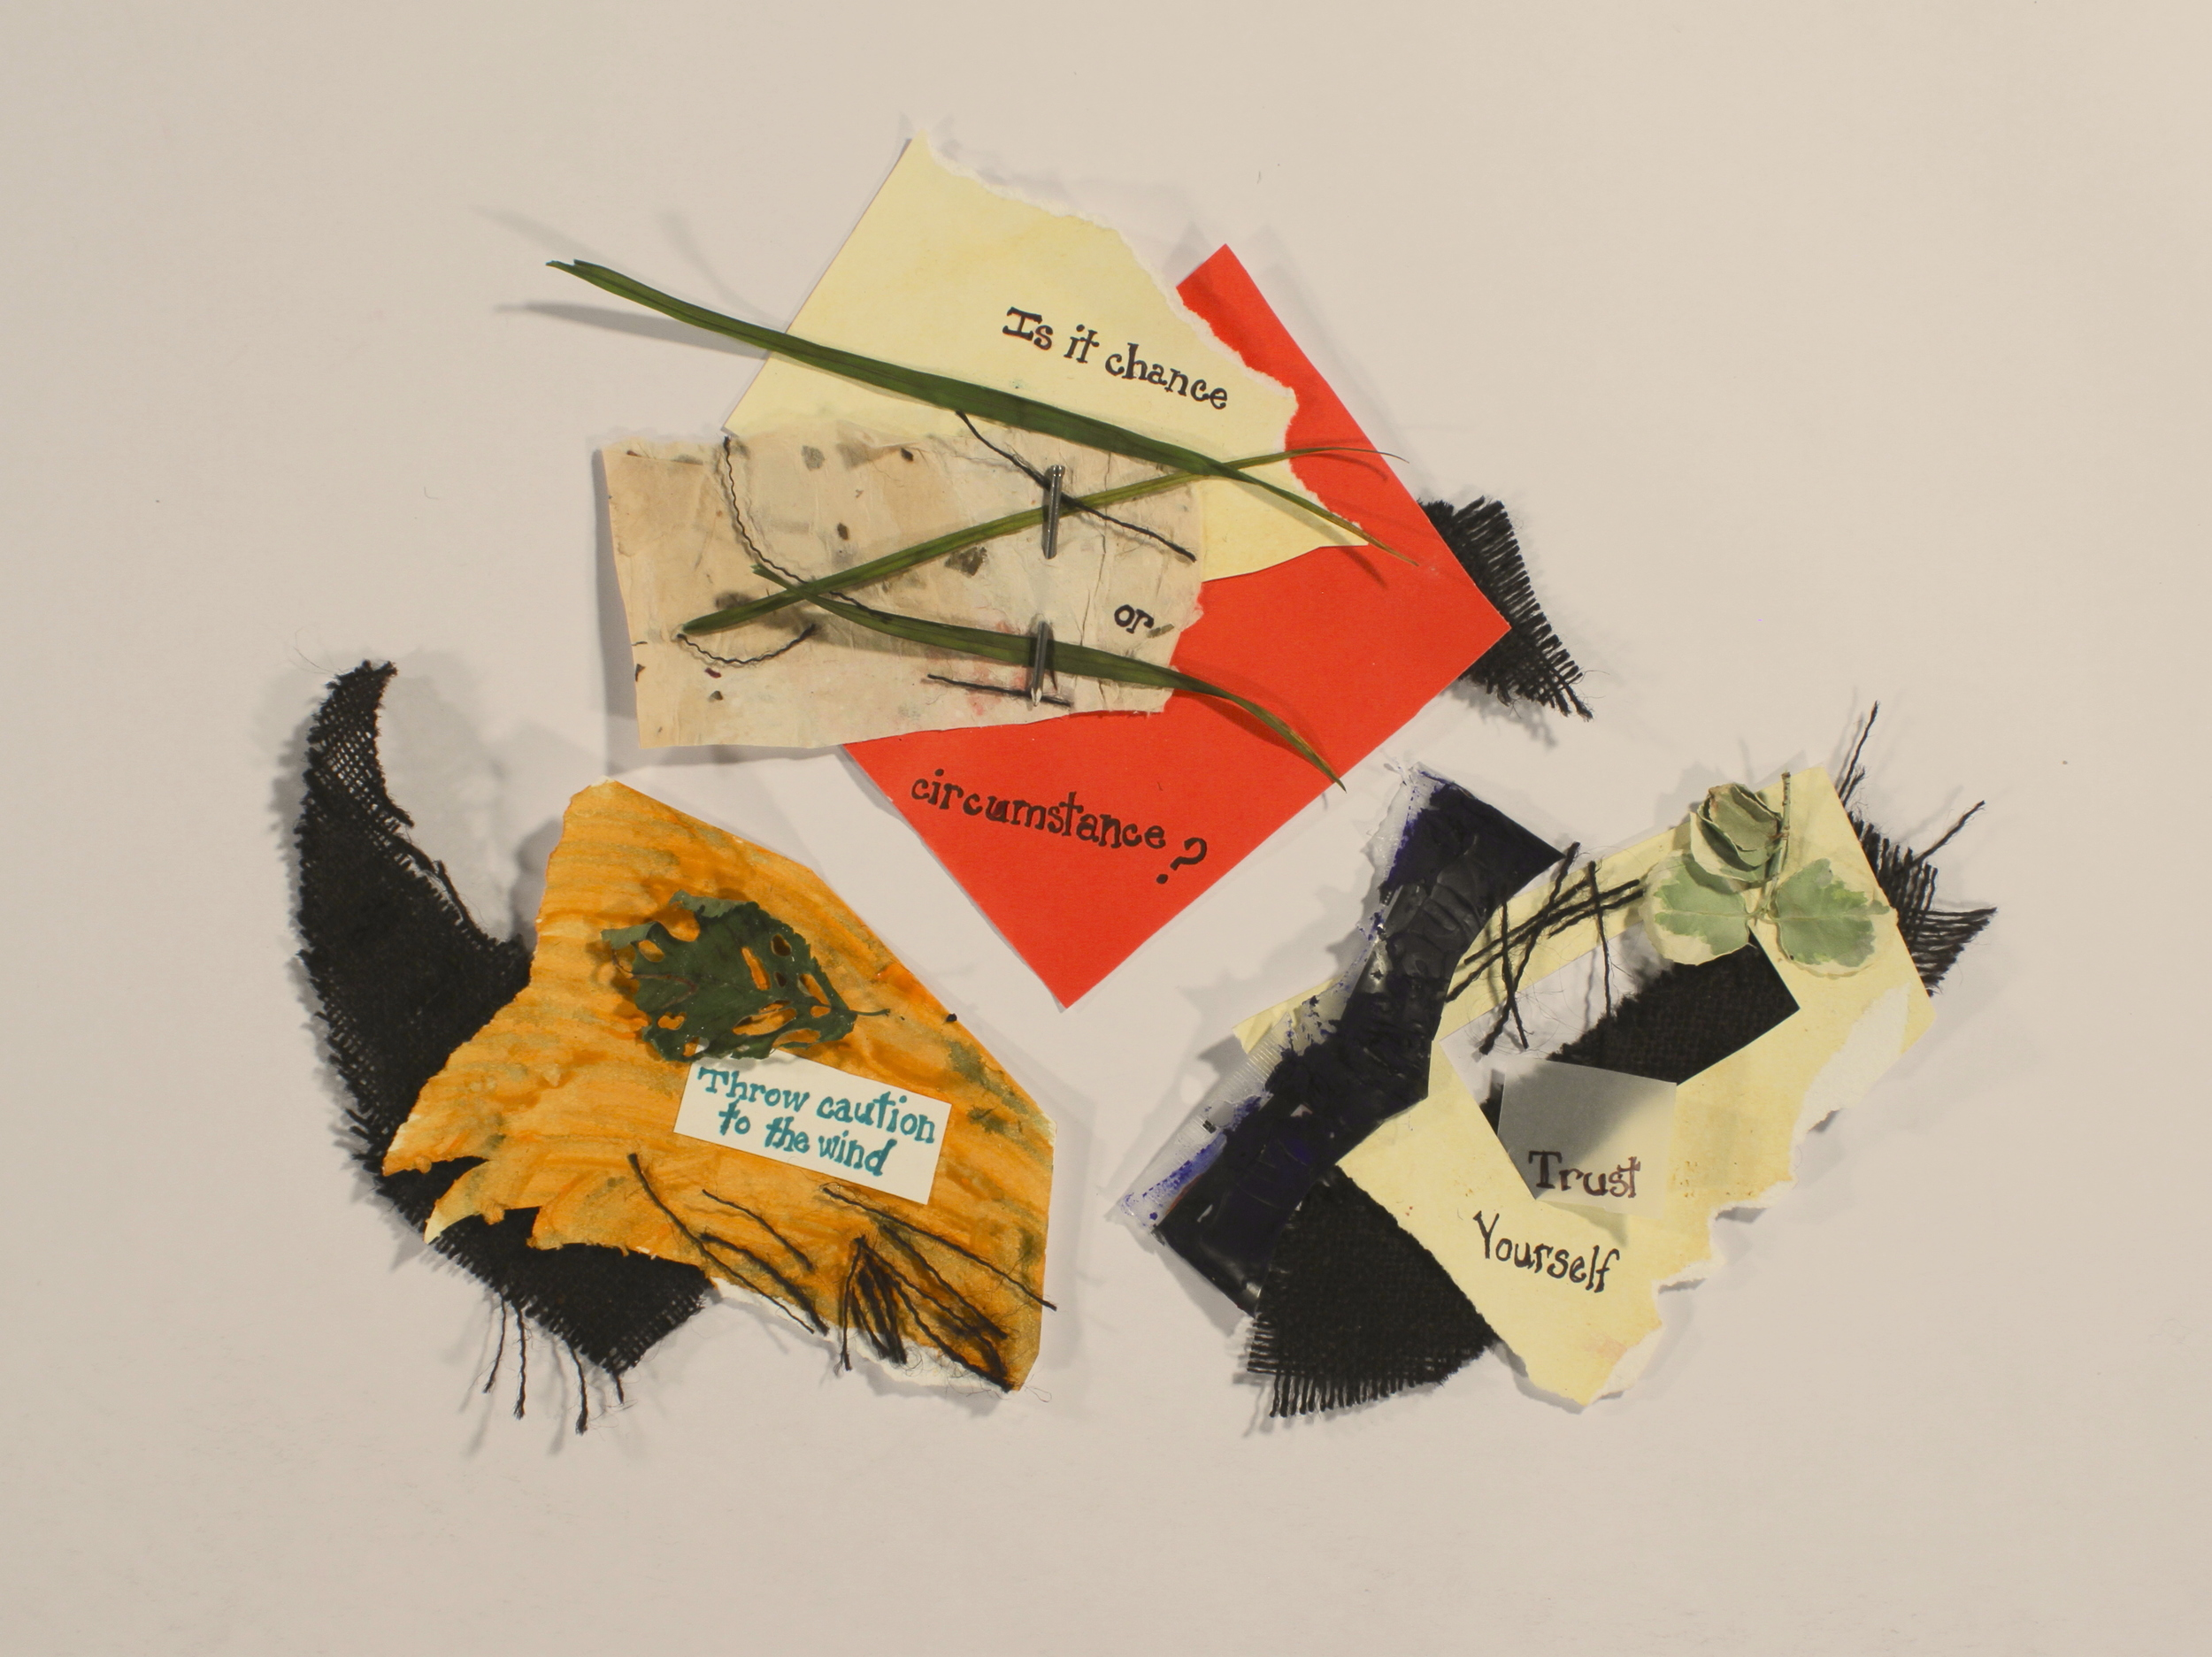 So They Say  2014, Burlap, acrylic, paper, leaves, vellum, nail, marker, plastic,11in x 13in